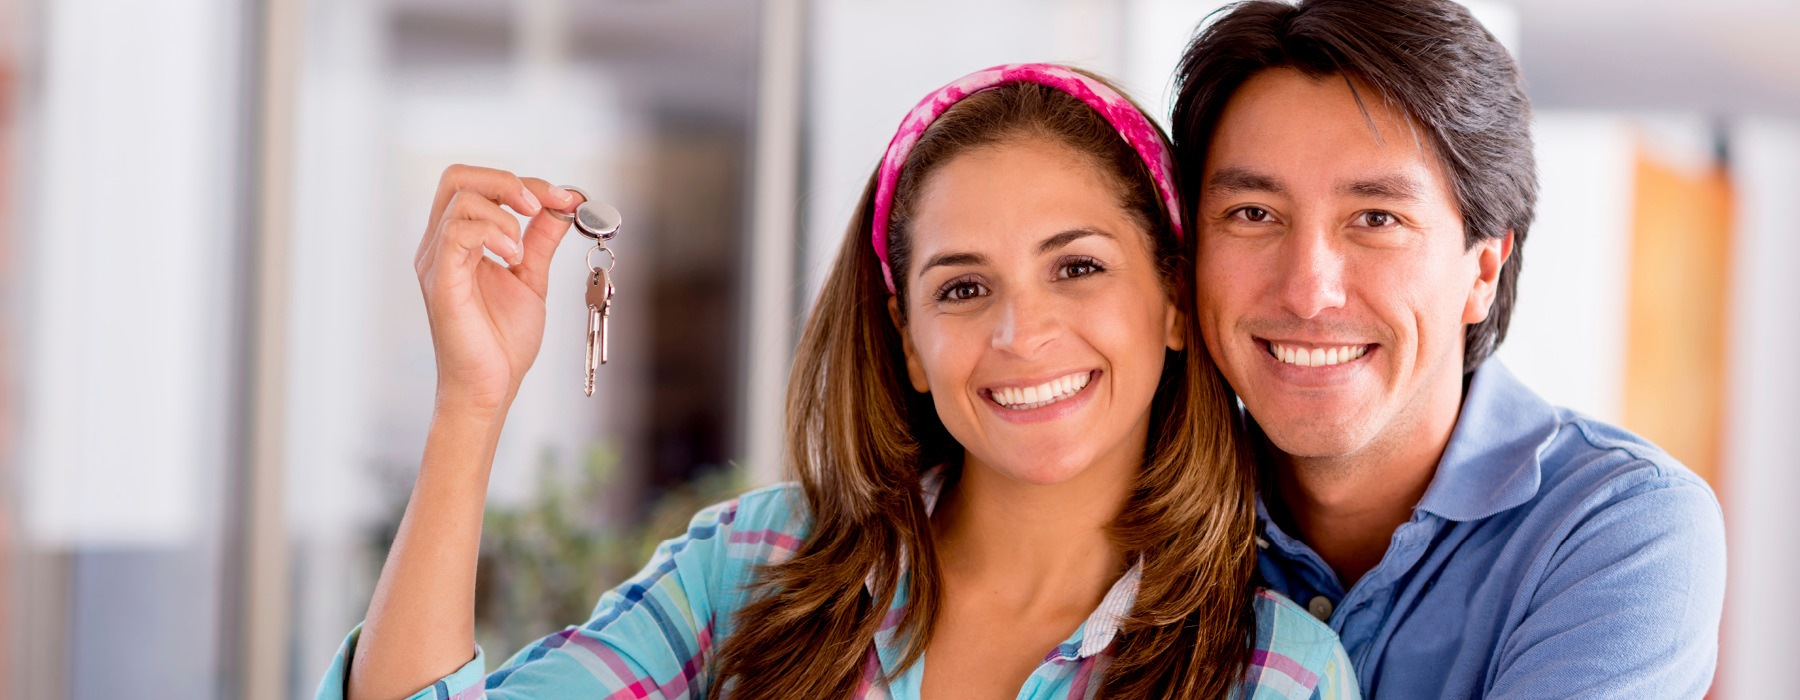 Man and woman holding key.